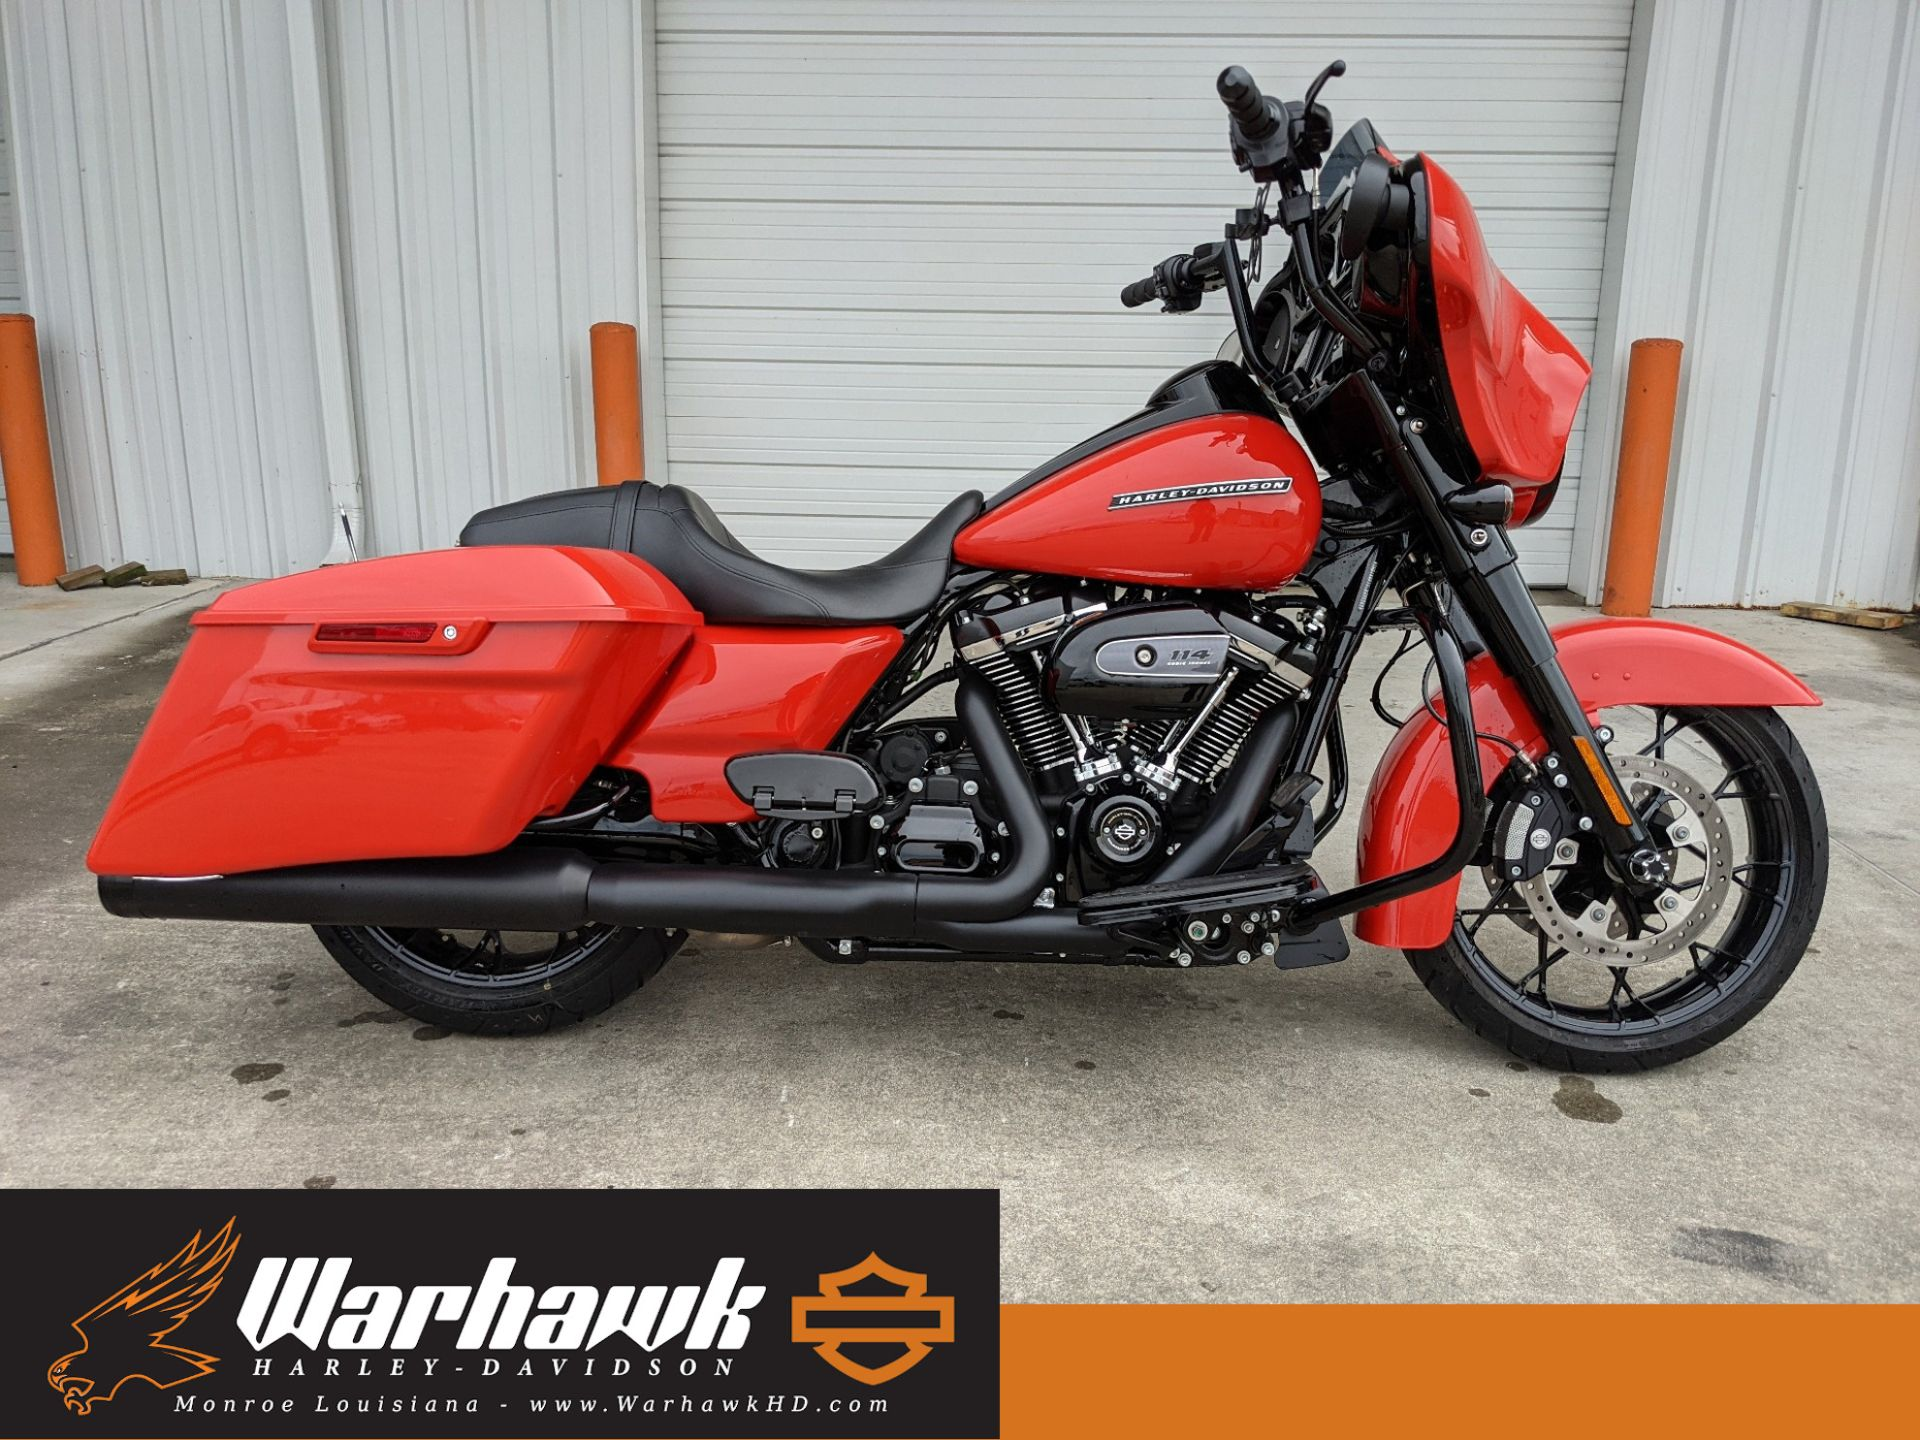 2020 Harley-Davidson Street Glide Special for sale low miles - Photo 1